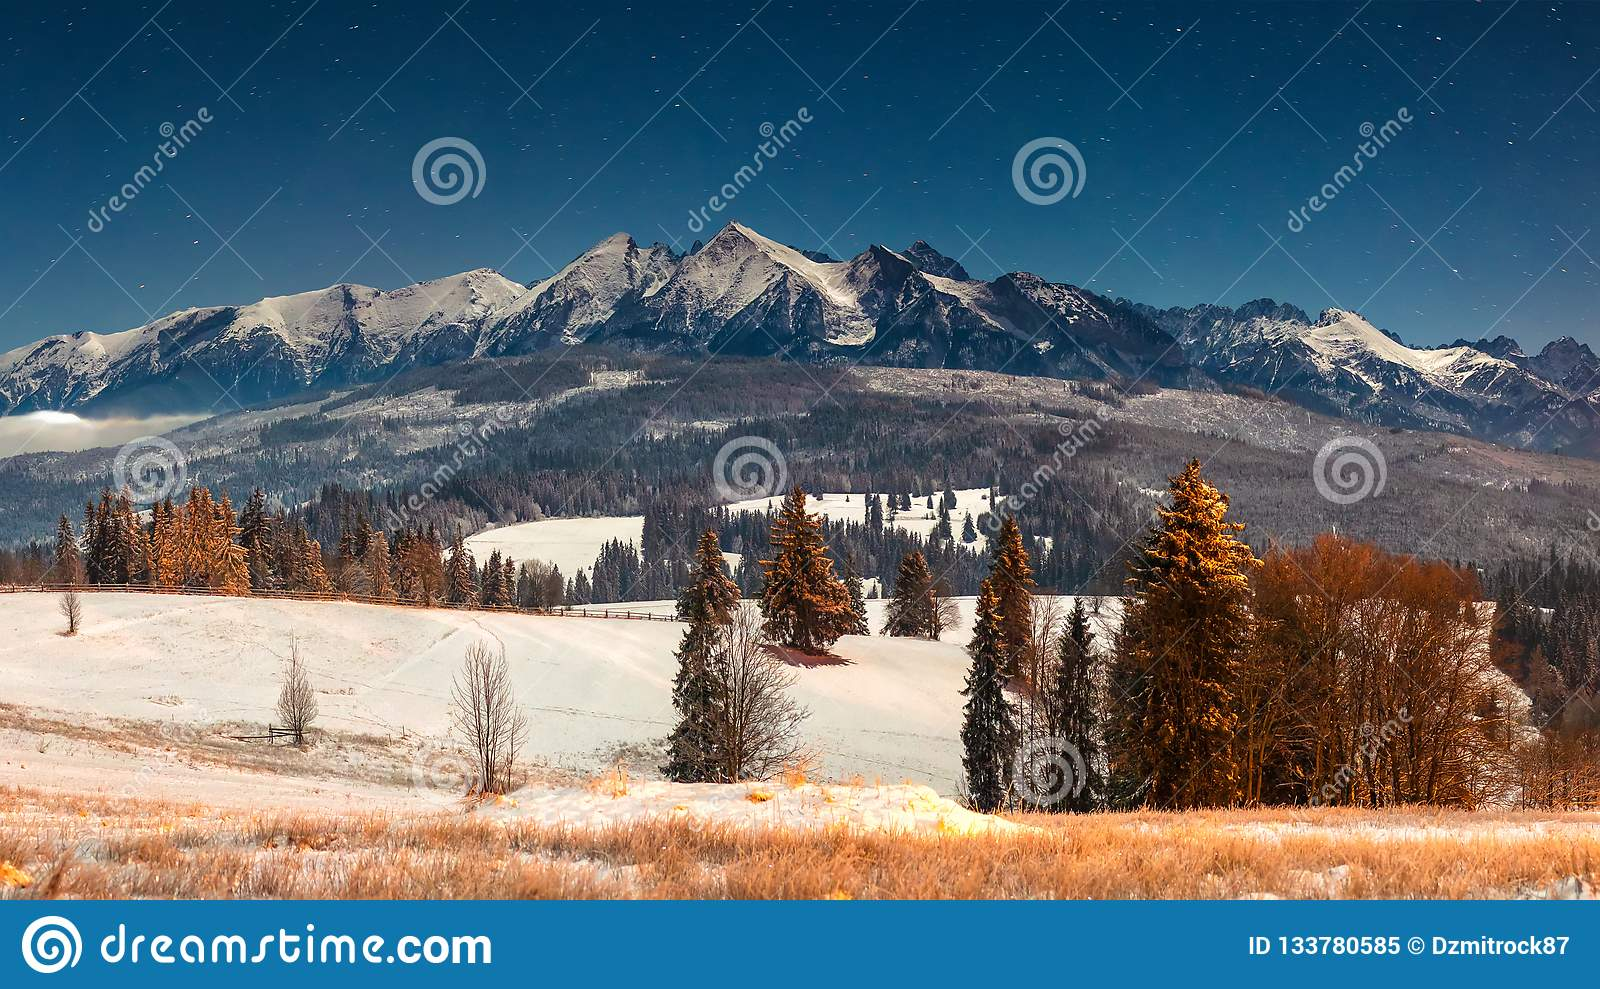 Landscape of winter mountains at night